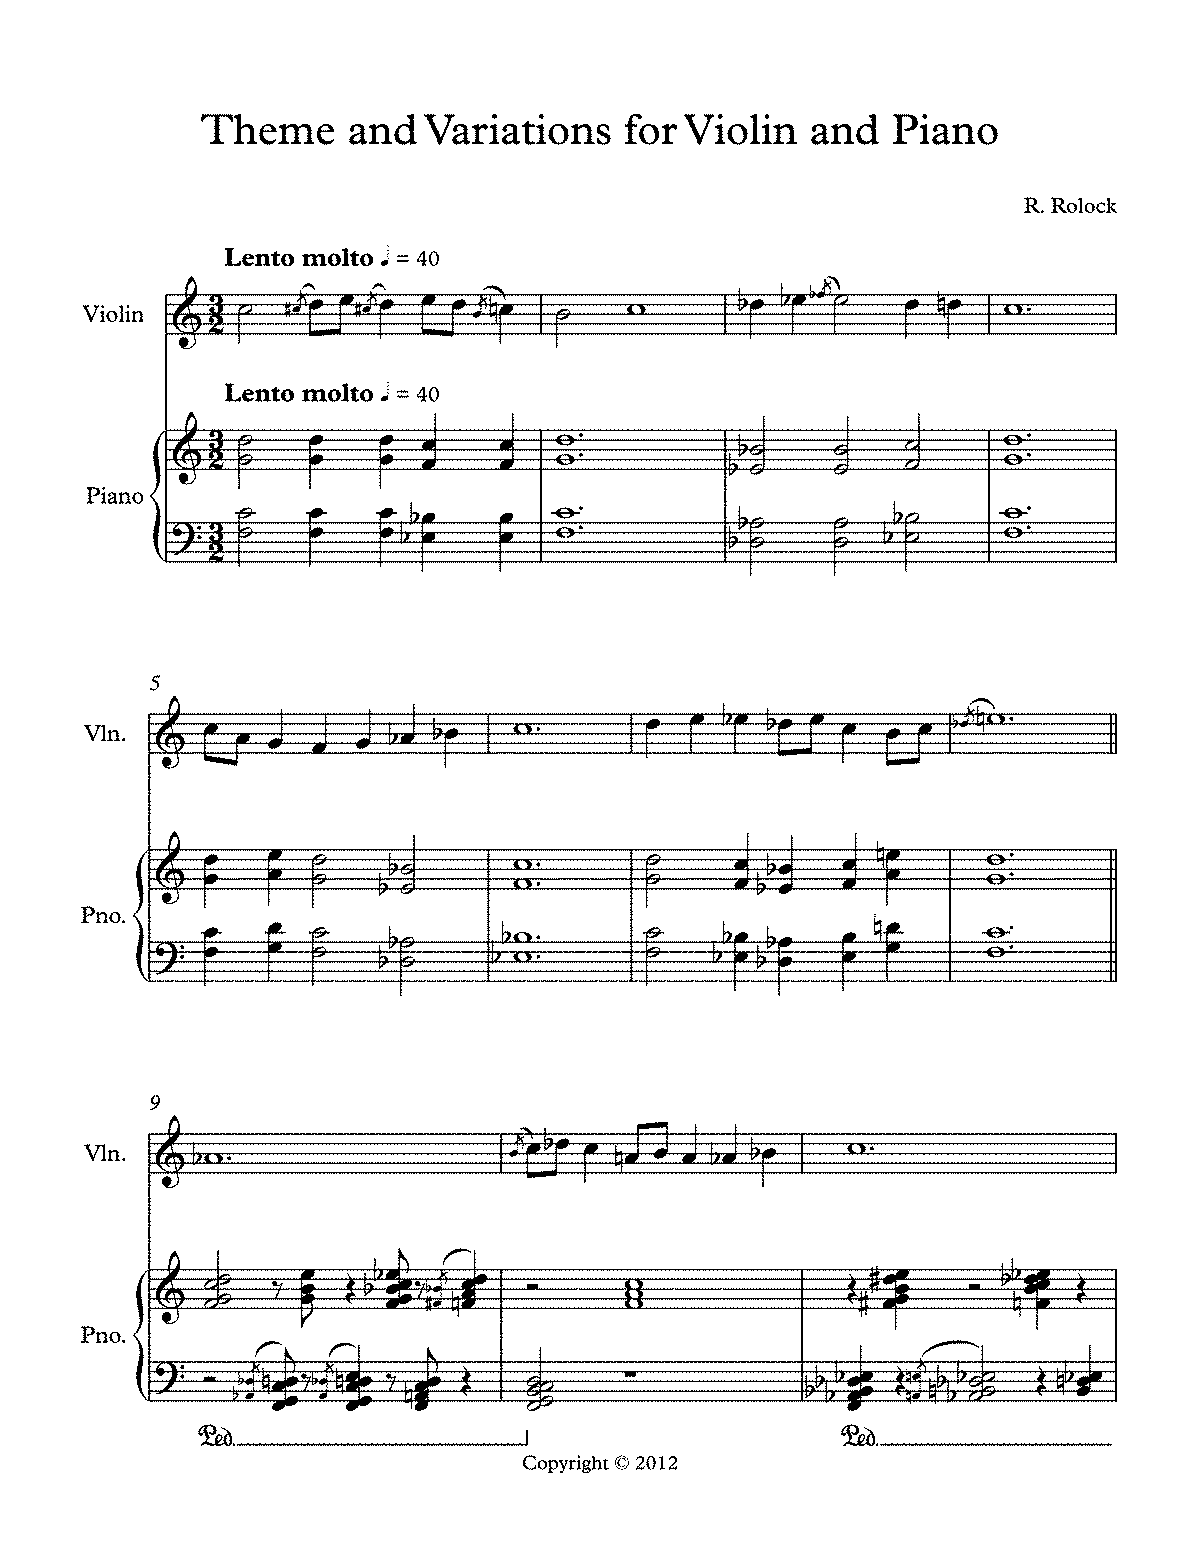 PMLP460977-Theme and Variations for Violin and Piano - Full Score.pdf